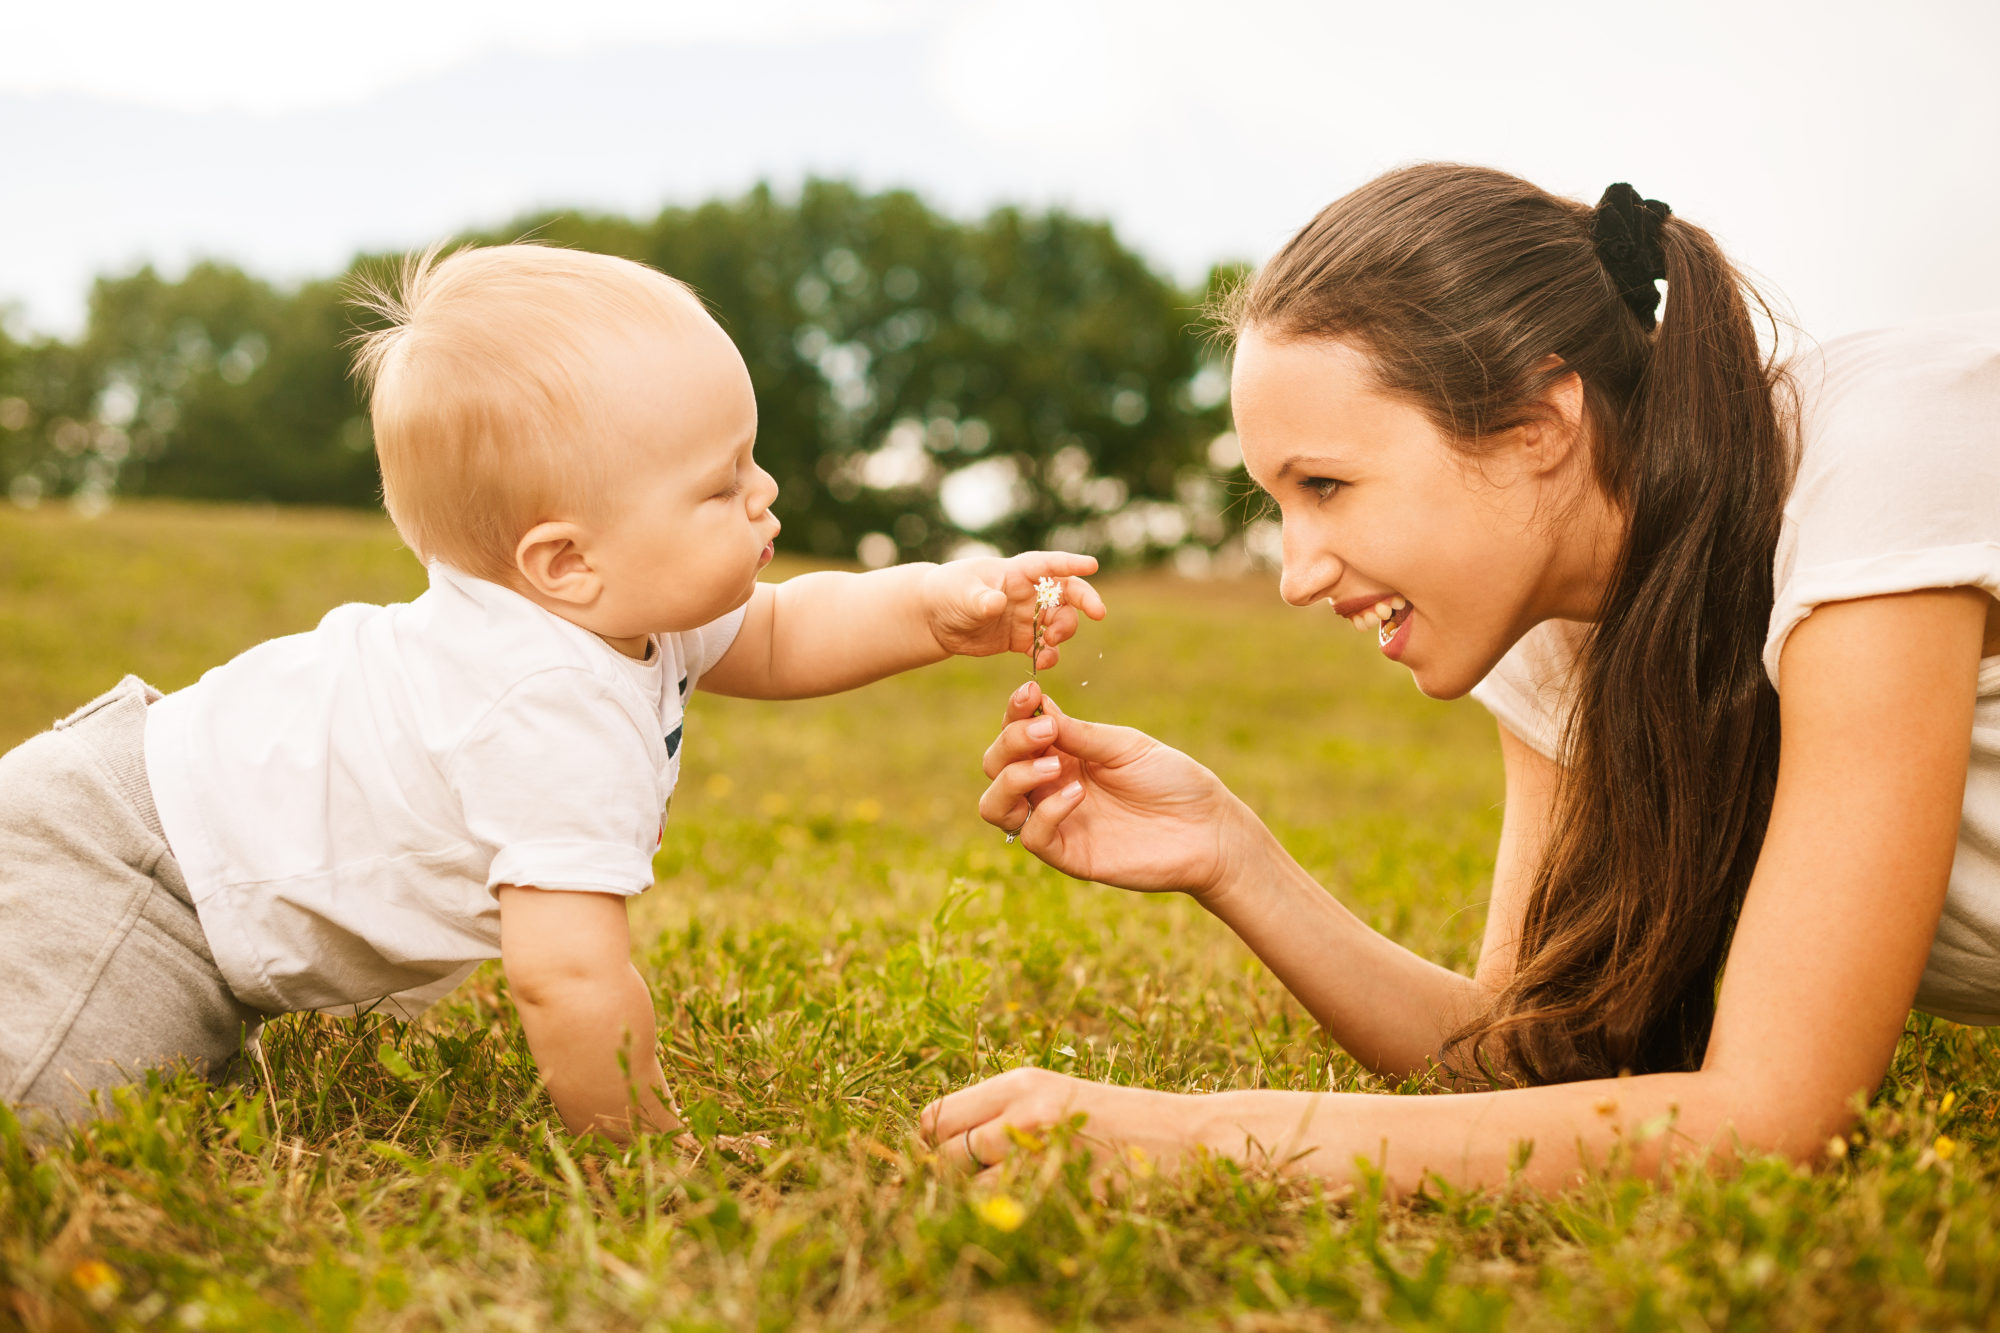 mother passing flower to her baby in the park